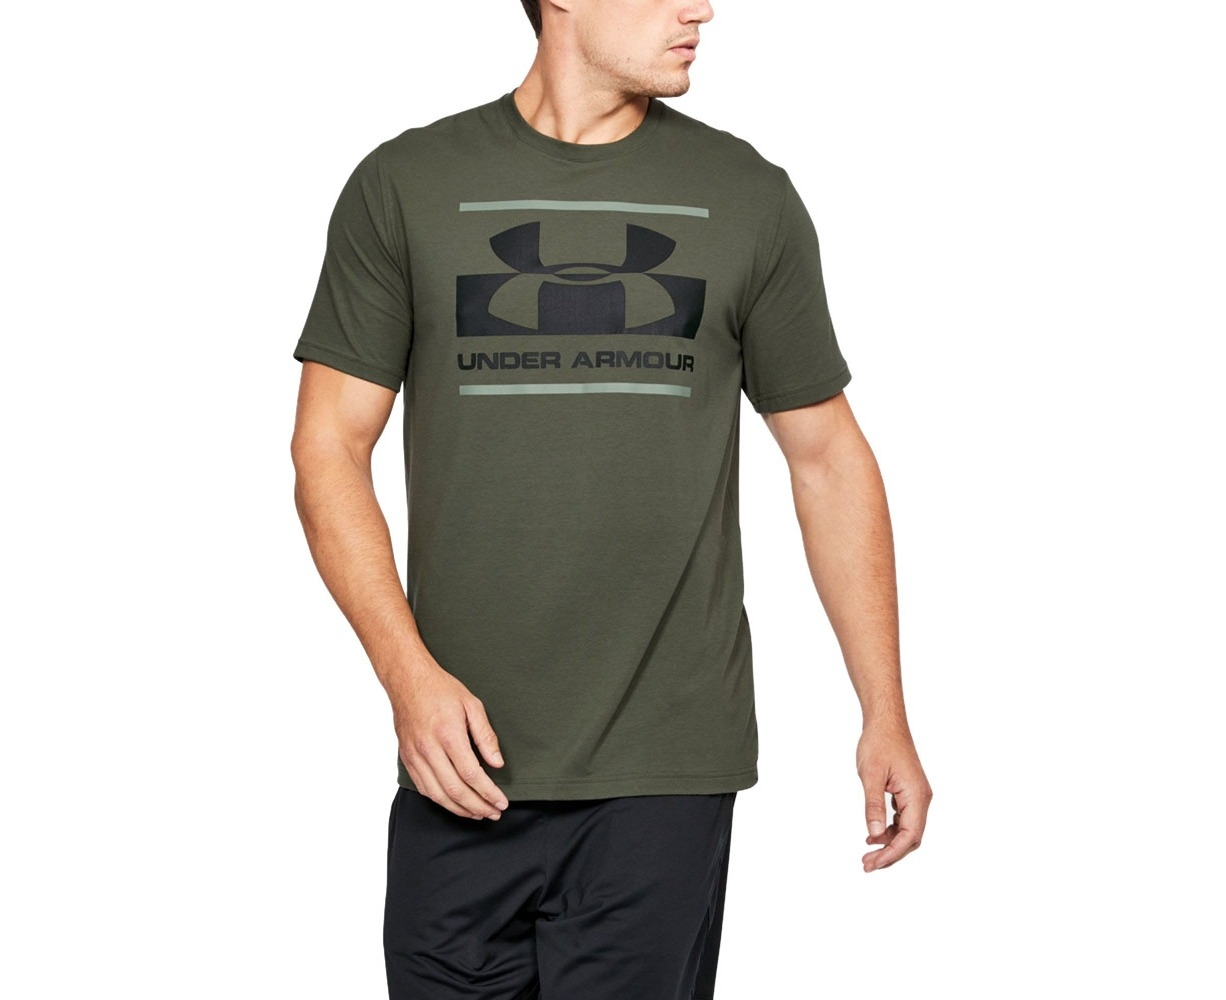 a64dd957 Under Armour Mens Blocked Sportstyle Logo Graphic Short Sleeve T Shirt -  DOWNTOWN GREEN / Moss Green | Catch.com.au